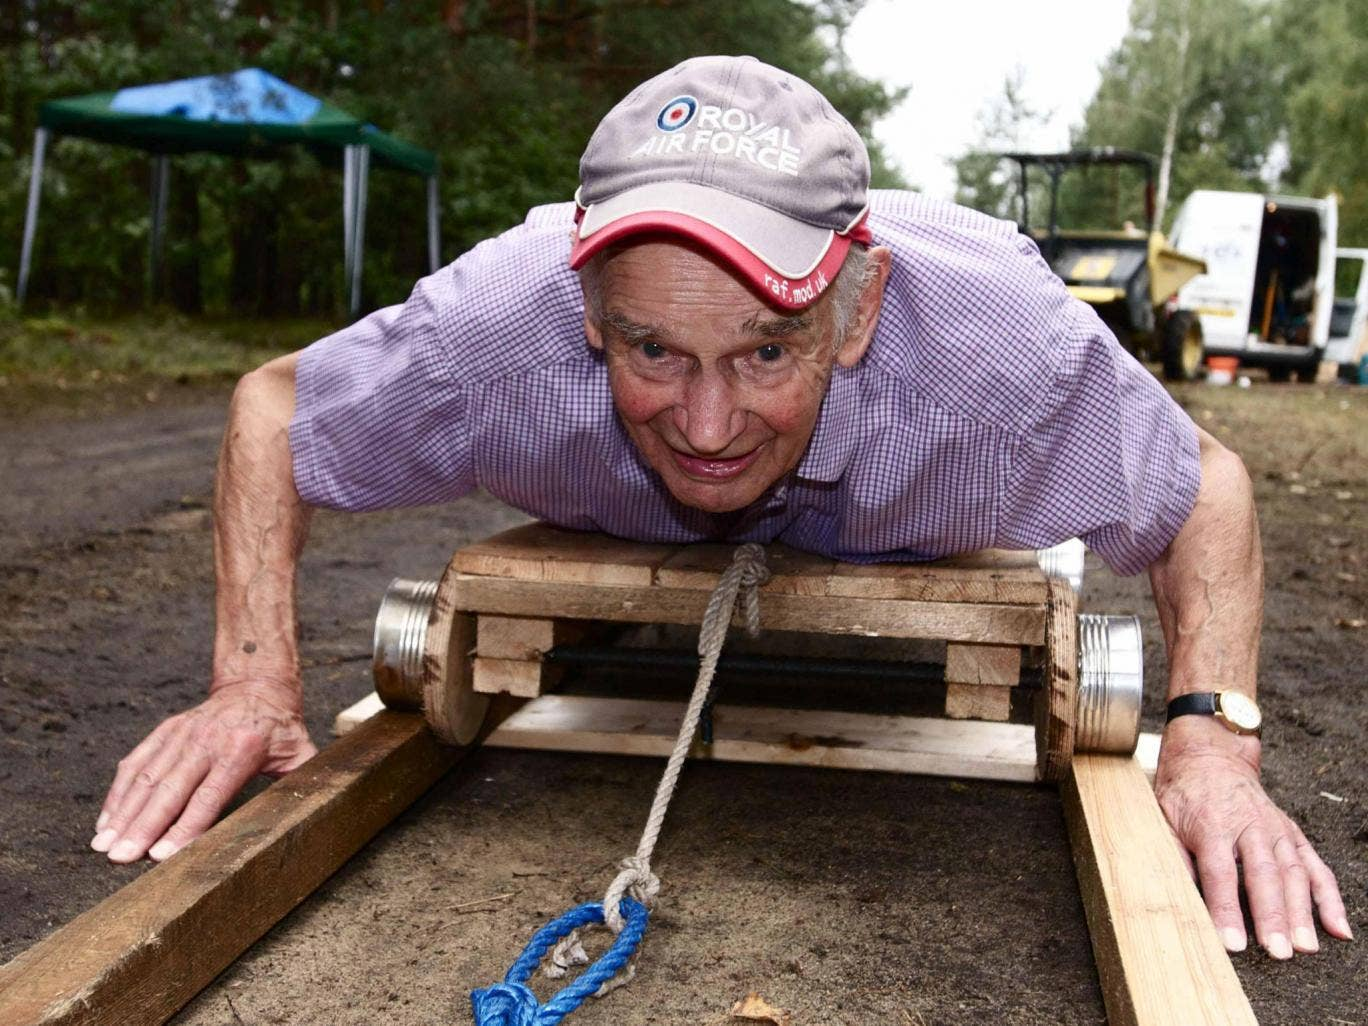 Stone demonstrates a tunnel trolley in 2011 for a television documentary